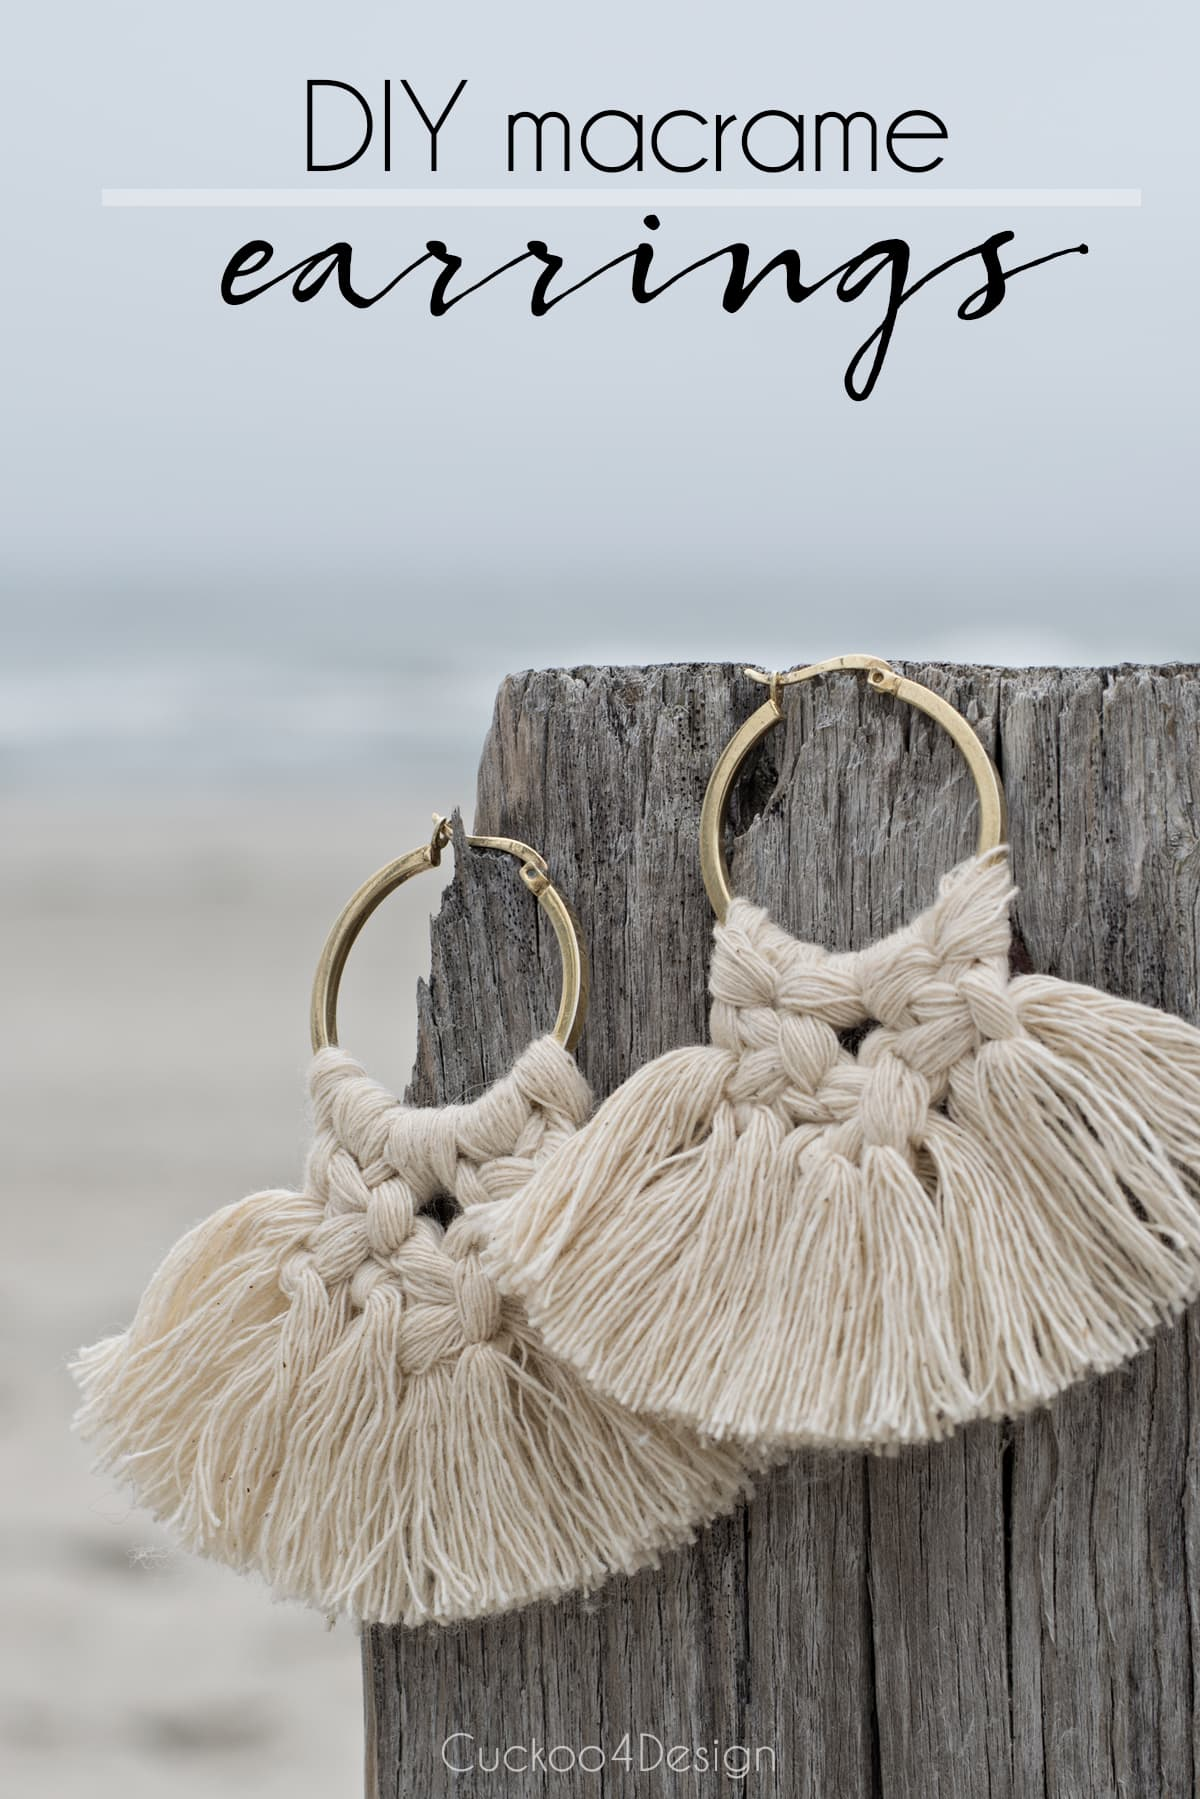 DIY macrame earrings tutorial